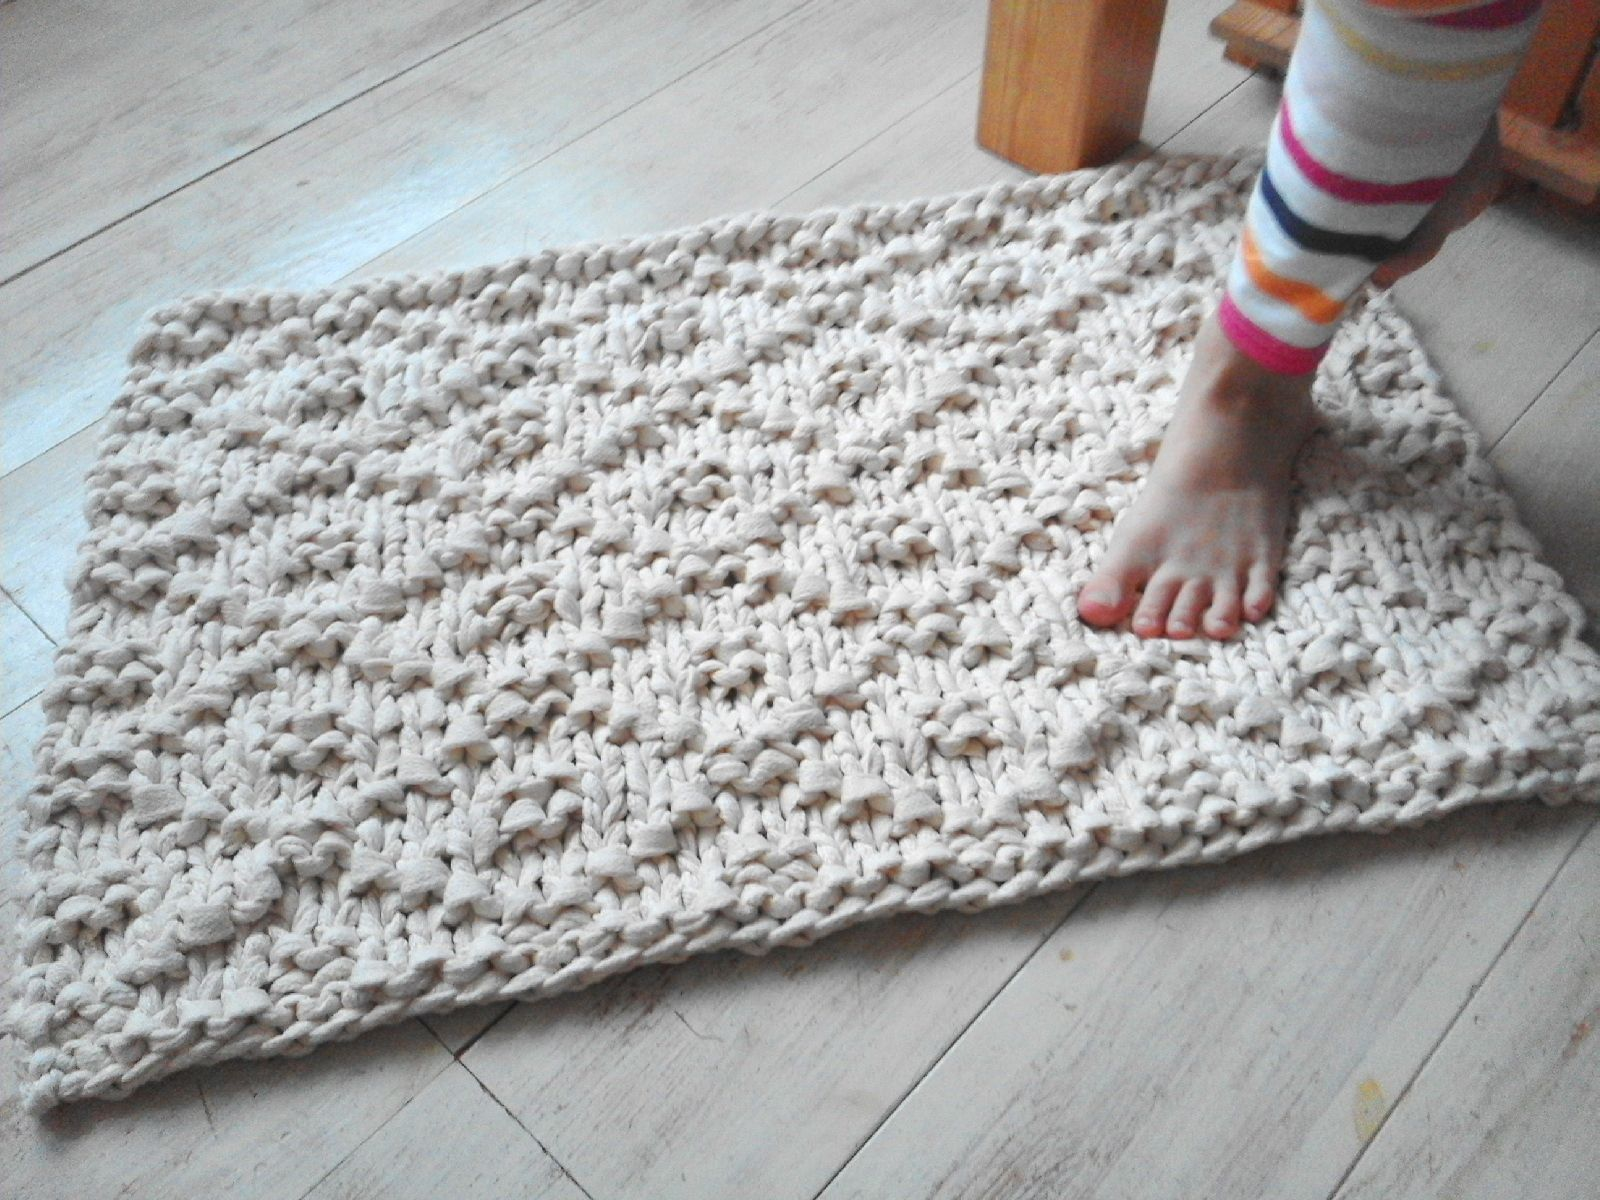 Knit bath rug mat from Elitai